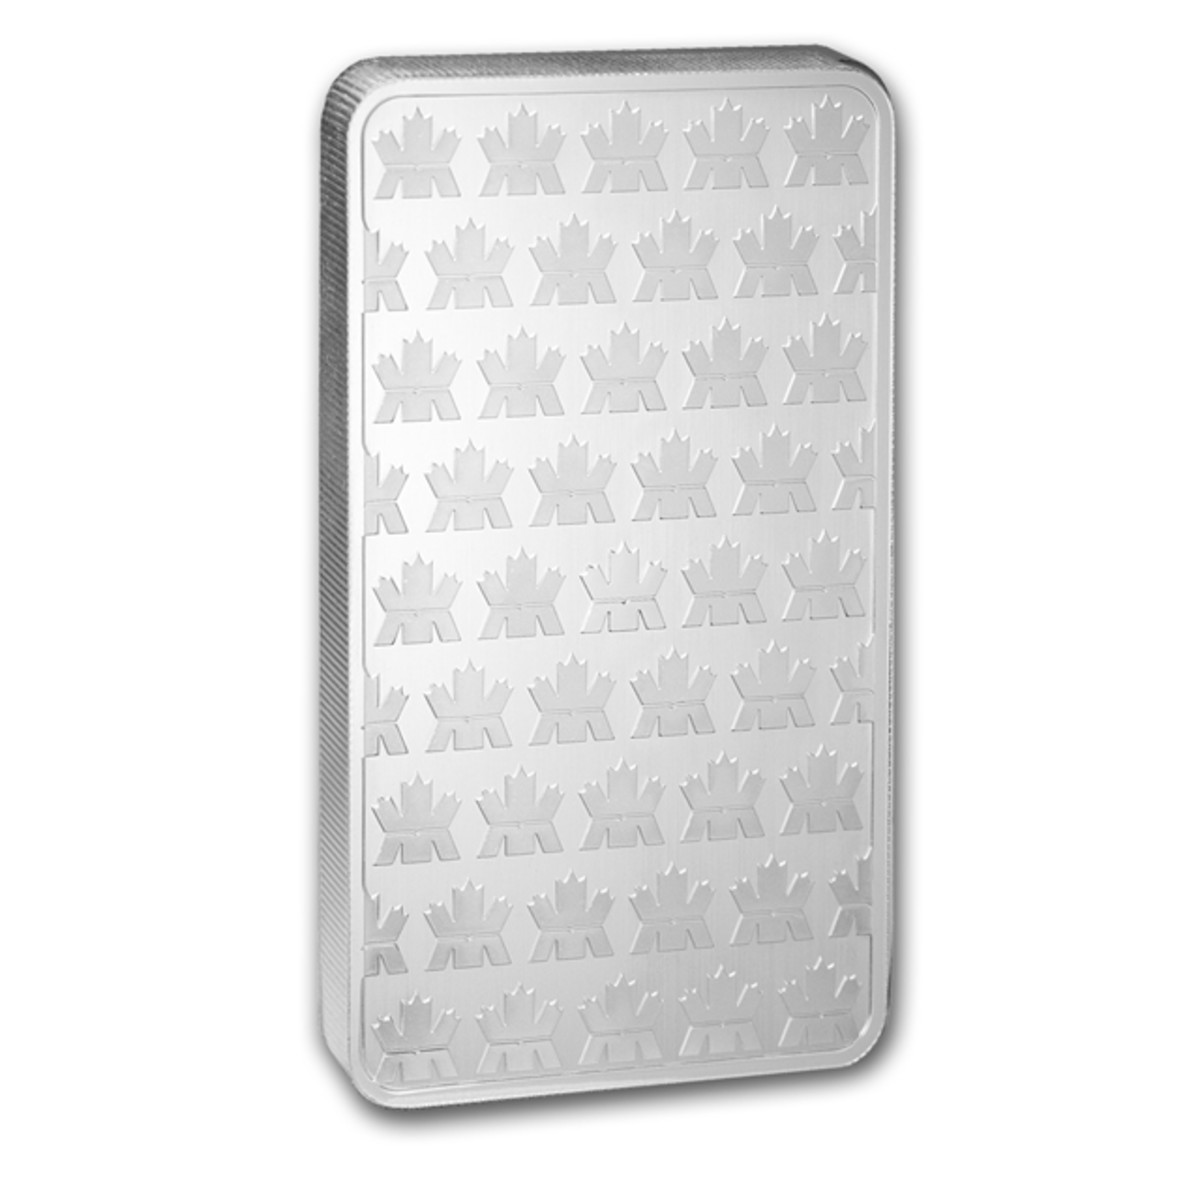 Reverse of the new RCM 10-ounce silver bullion bar (Image used with permission of APMEX)